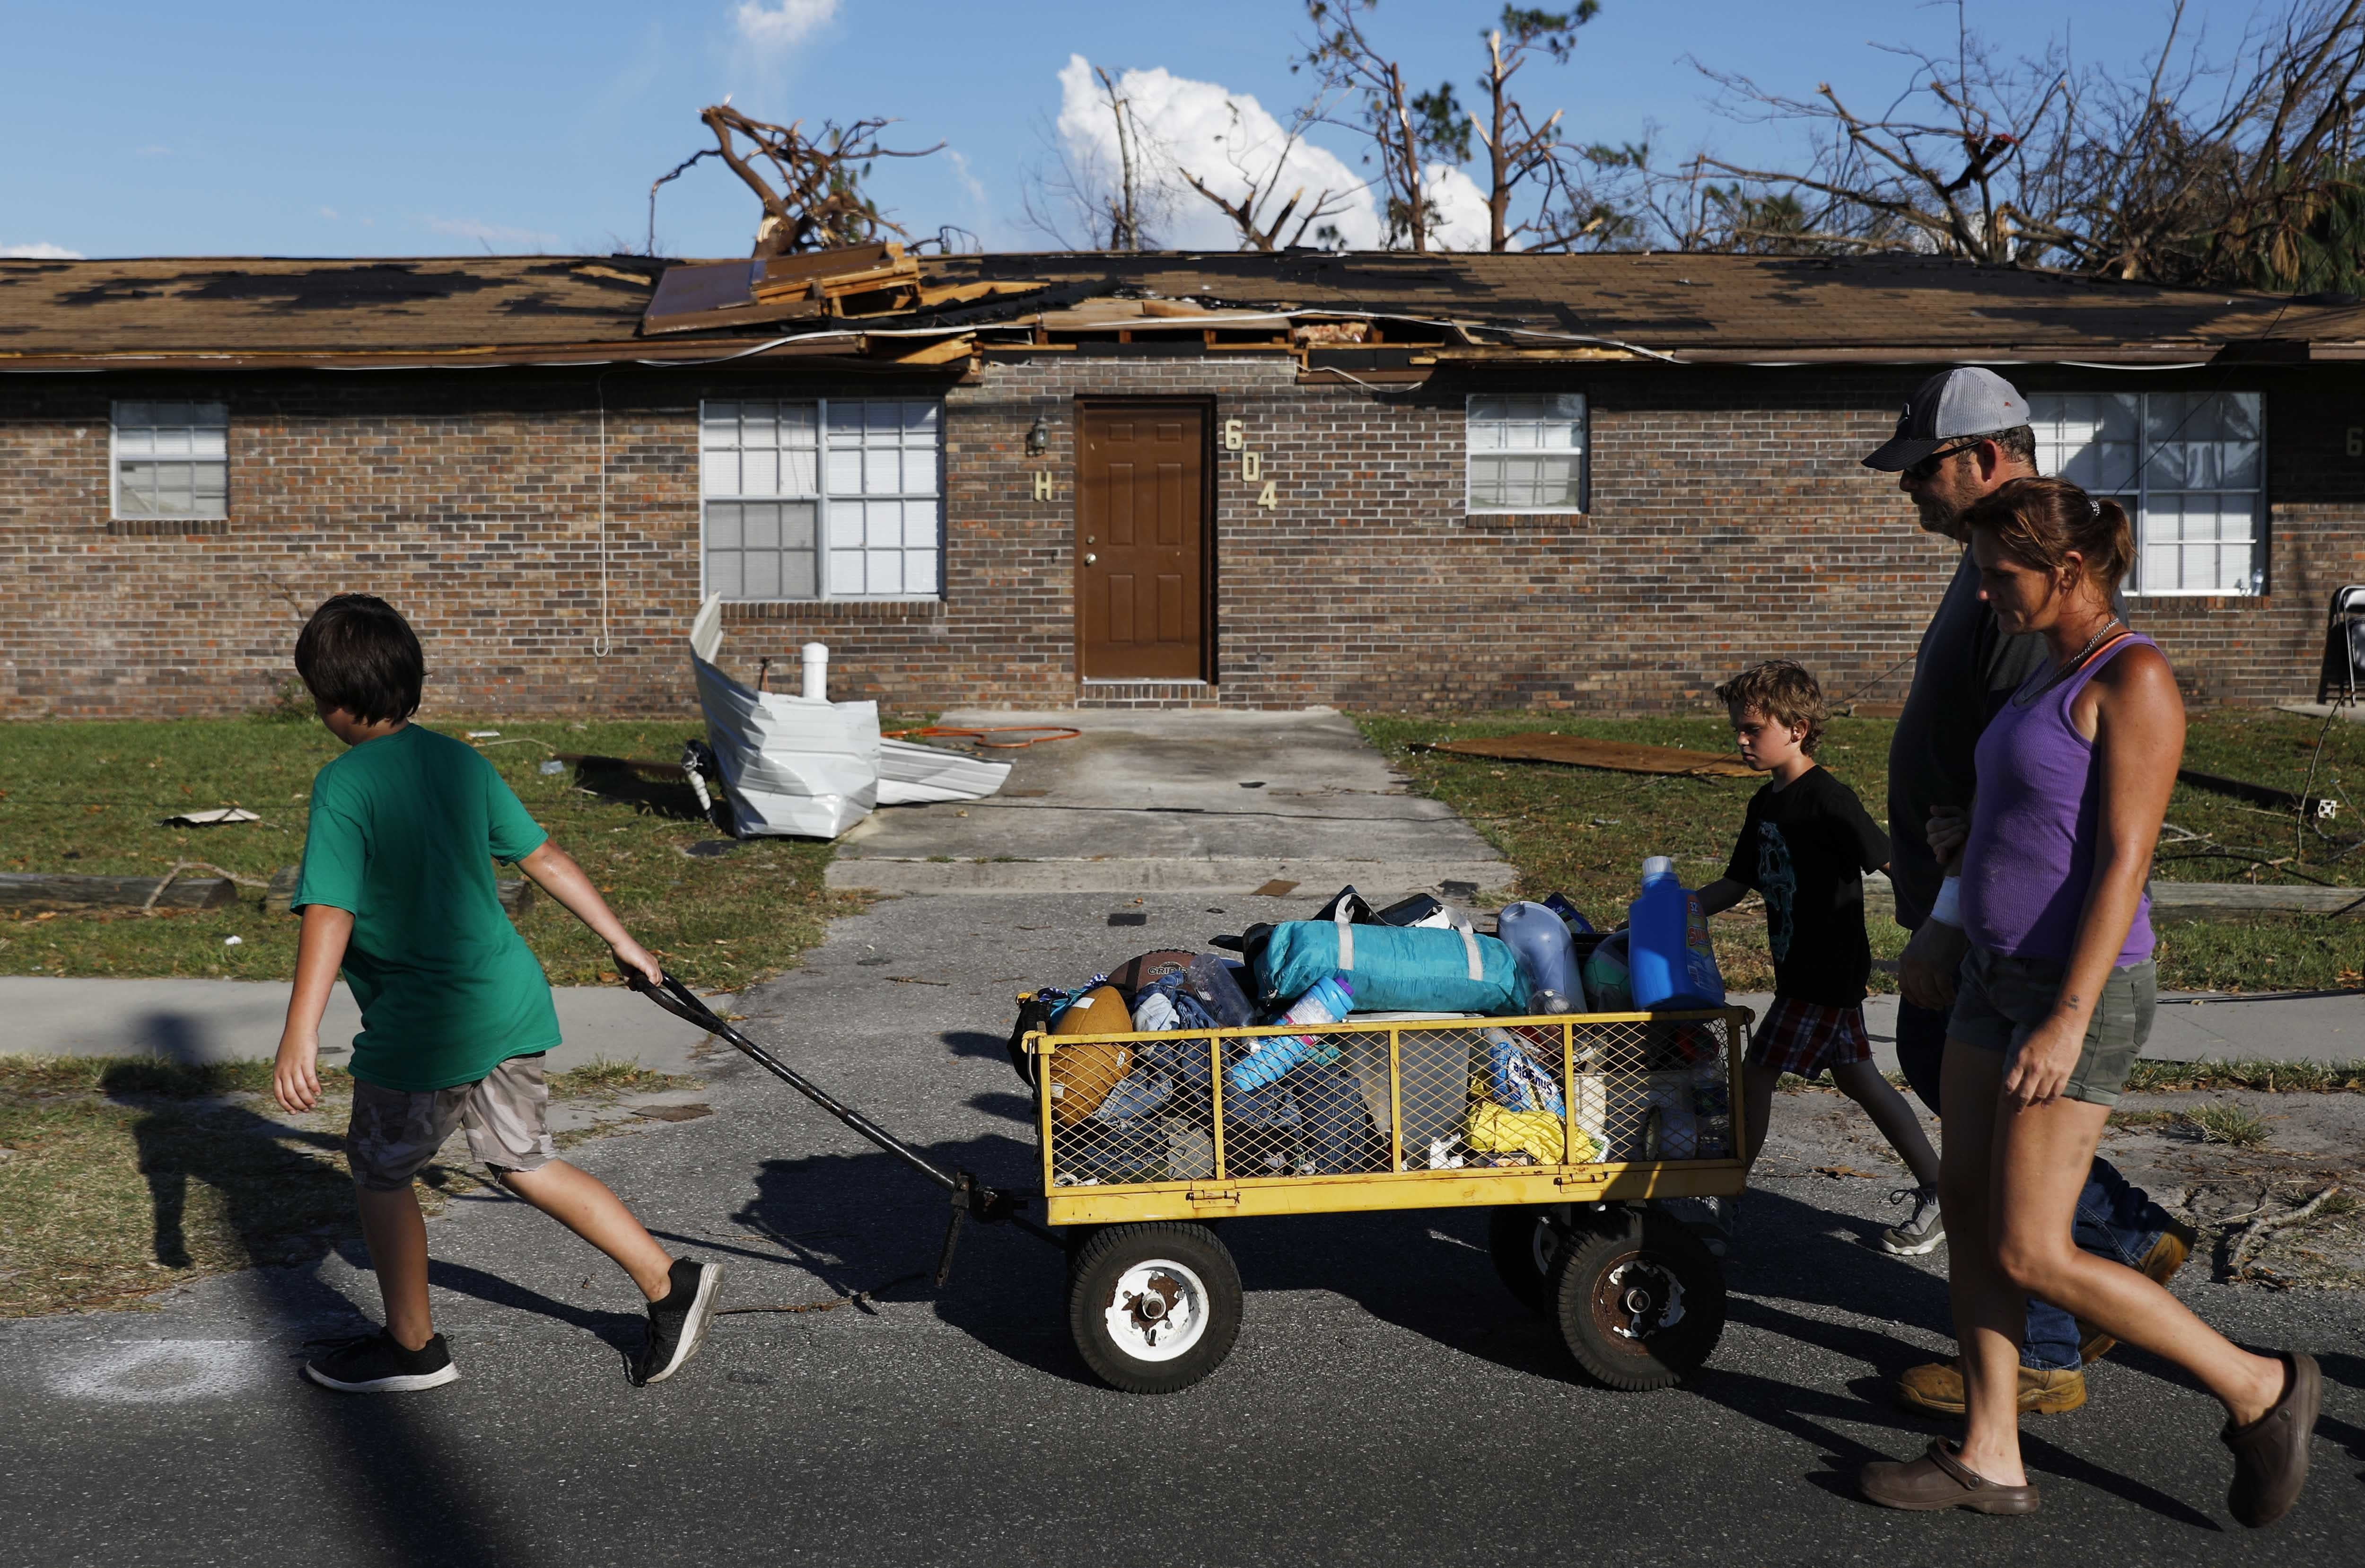 Anthony Weldon, 11, left, pulls a cart with his family's belongings as he relocates with his brother Thomas, 10, mother Dawn Clarke, right, and father Richard Coker from their uninhabitable damaged home to stay at their landlord's place in the aftermath of Hurricane Michael in Springfield, Fla., Monday, Oct. 15, 2018. (AP Photo/David Goldman)